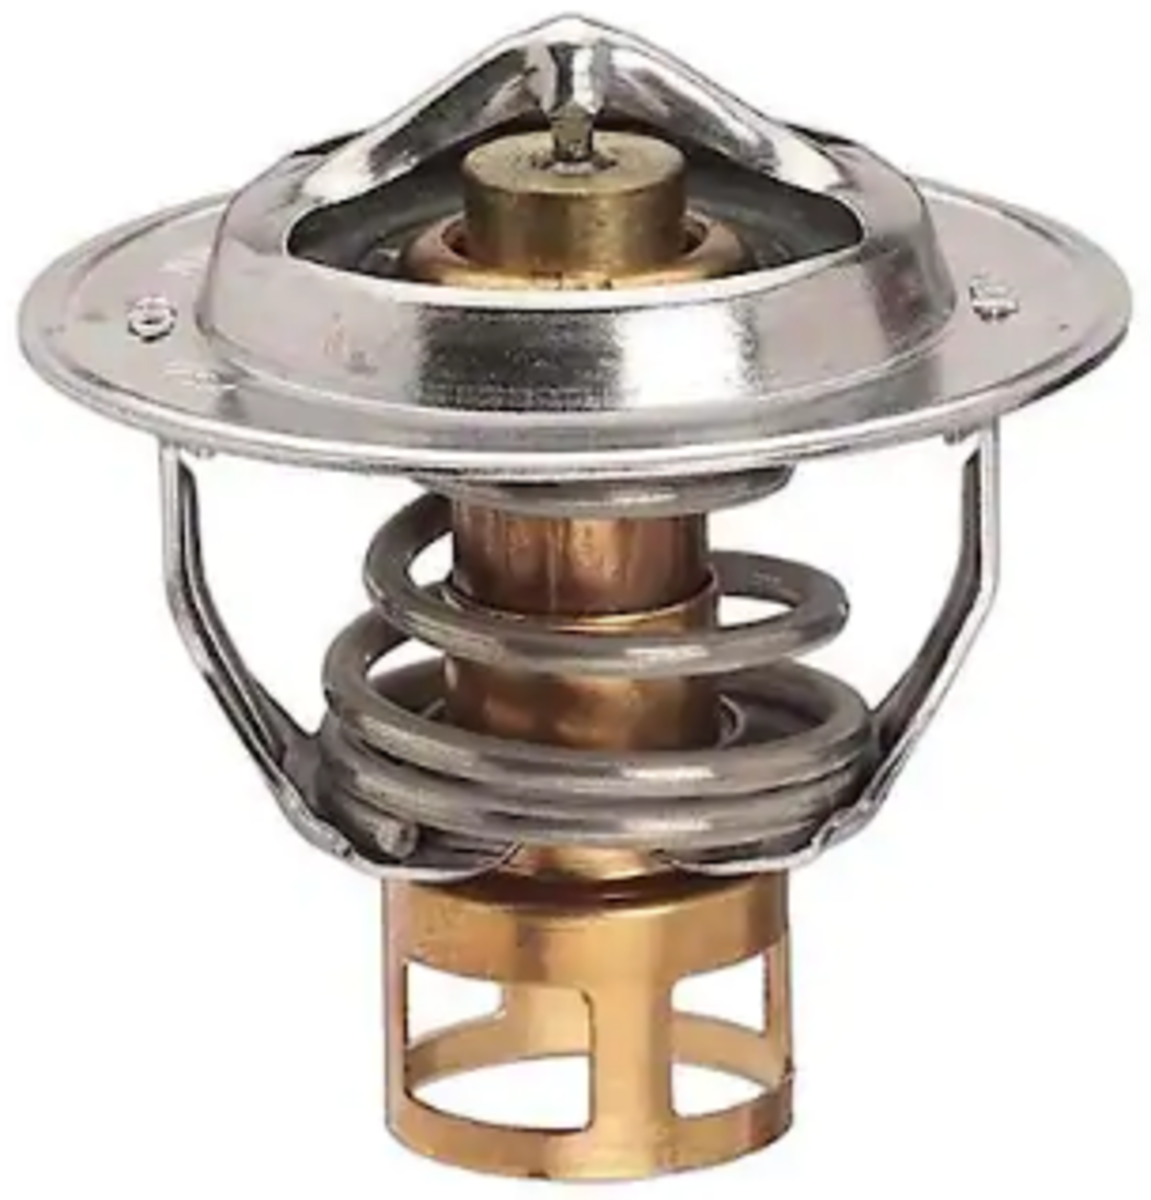 Automobile thermostat with cylindrical brass center containing wax